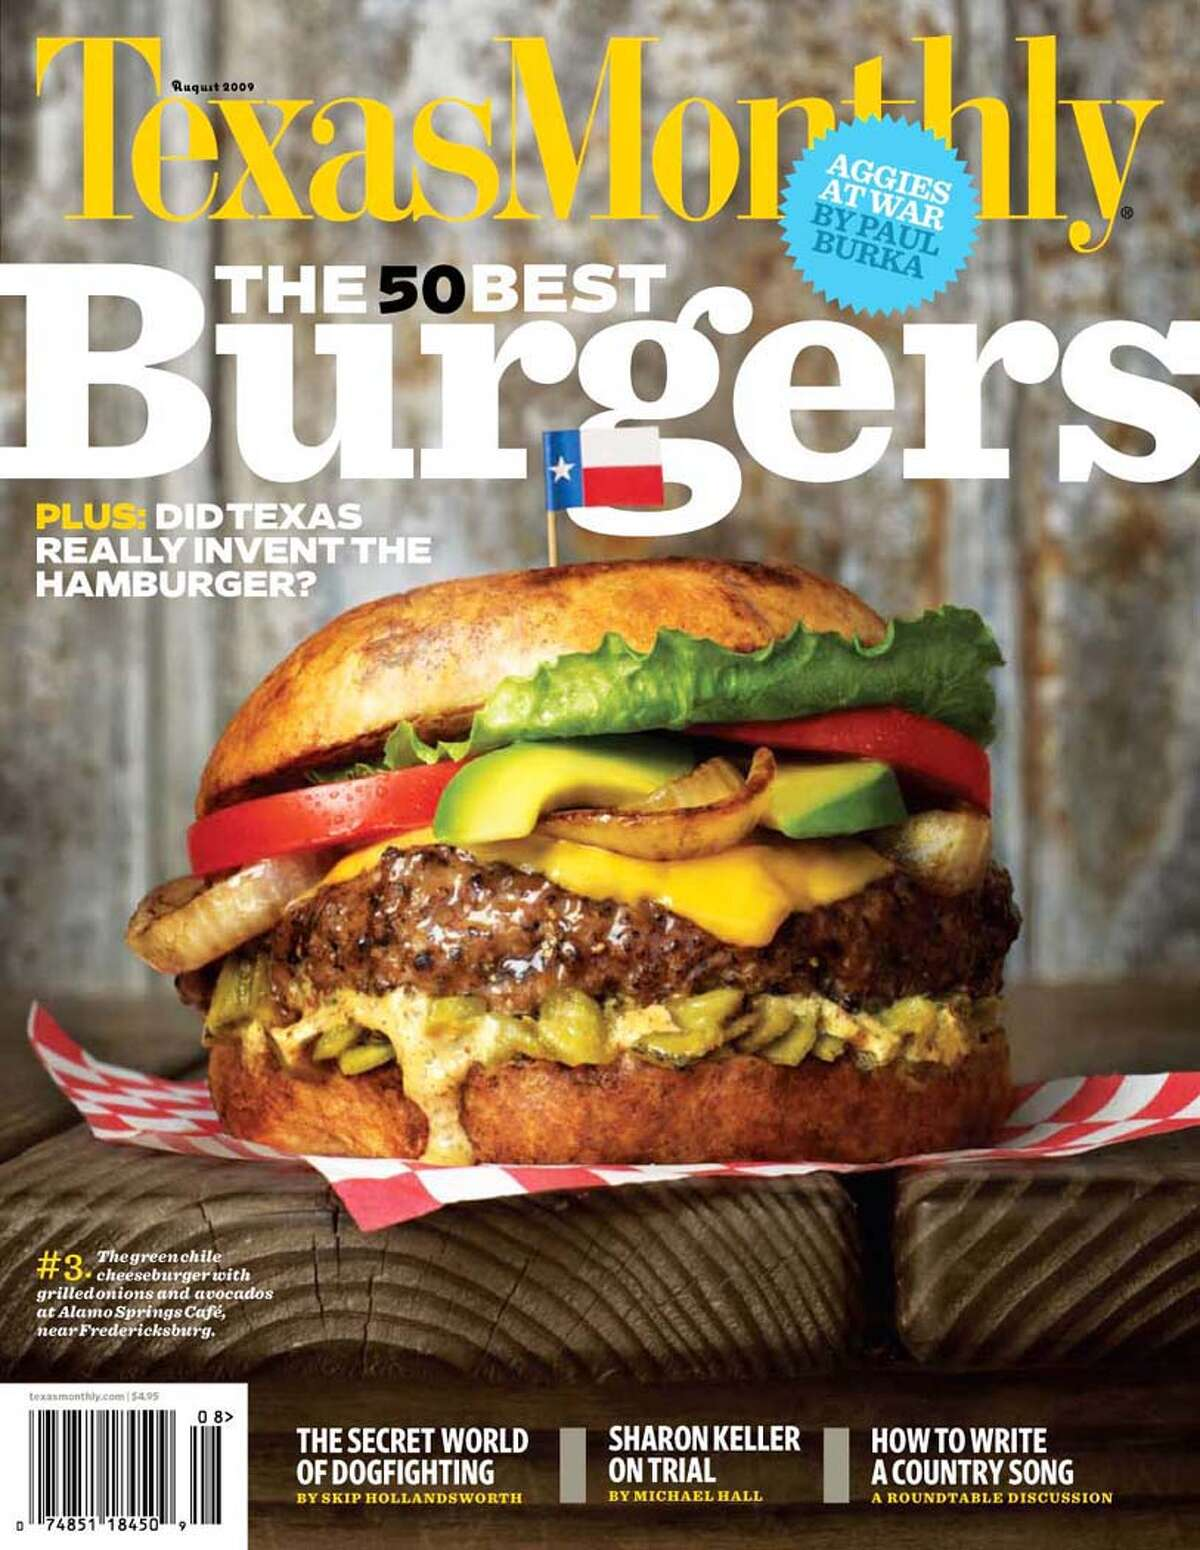 MAGAZINE COVER - Texas Monthly cover of August issue listing the 50 best burgers in Texas. Credit: Texas Monthly